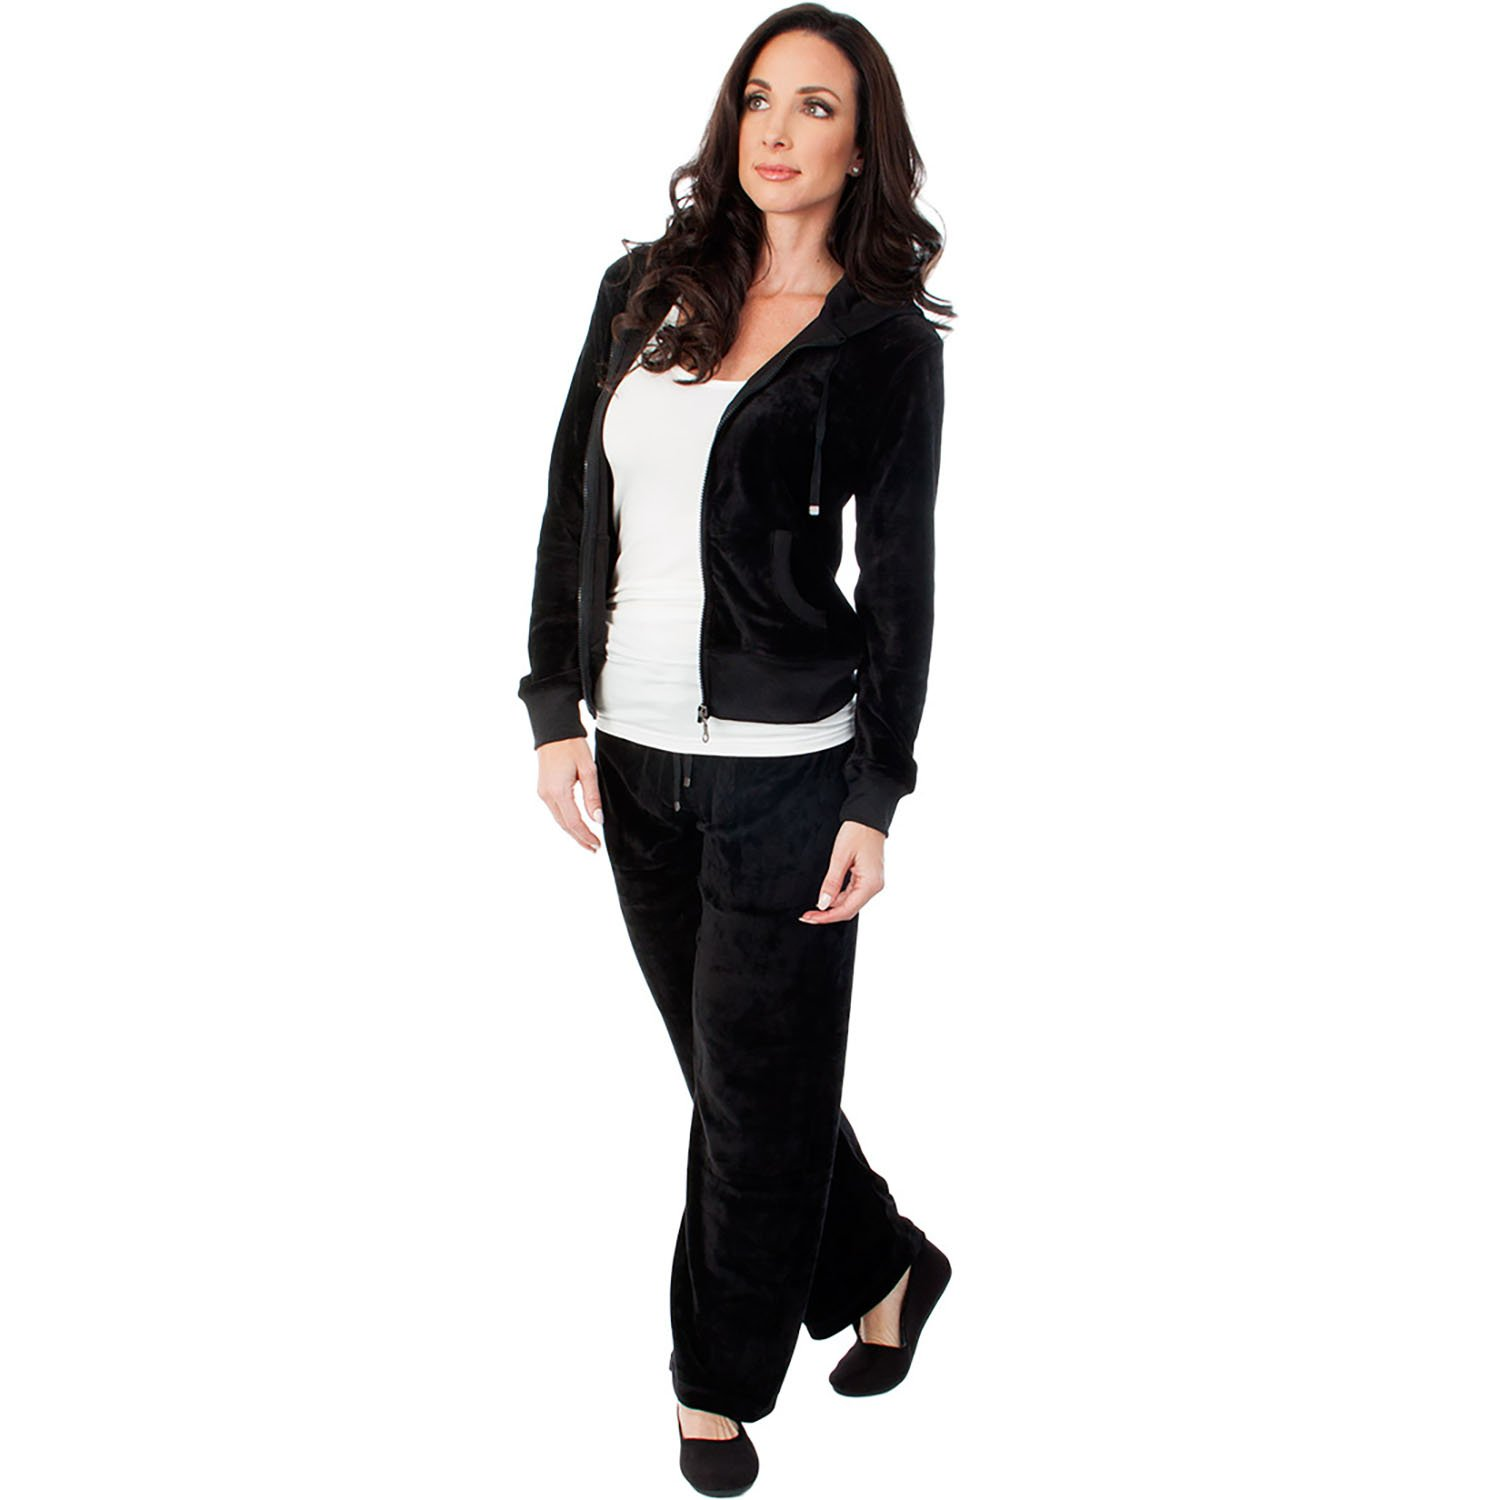 e4580a10f05 SOFT   LUXURIOUS - A blend of dacron and rayon give this tracksuit a  luxurious feel that s soft on the skin. RELAXED SILHOUETTE - Relaxed fit  style pants ...